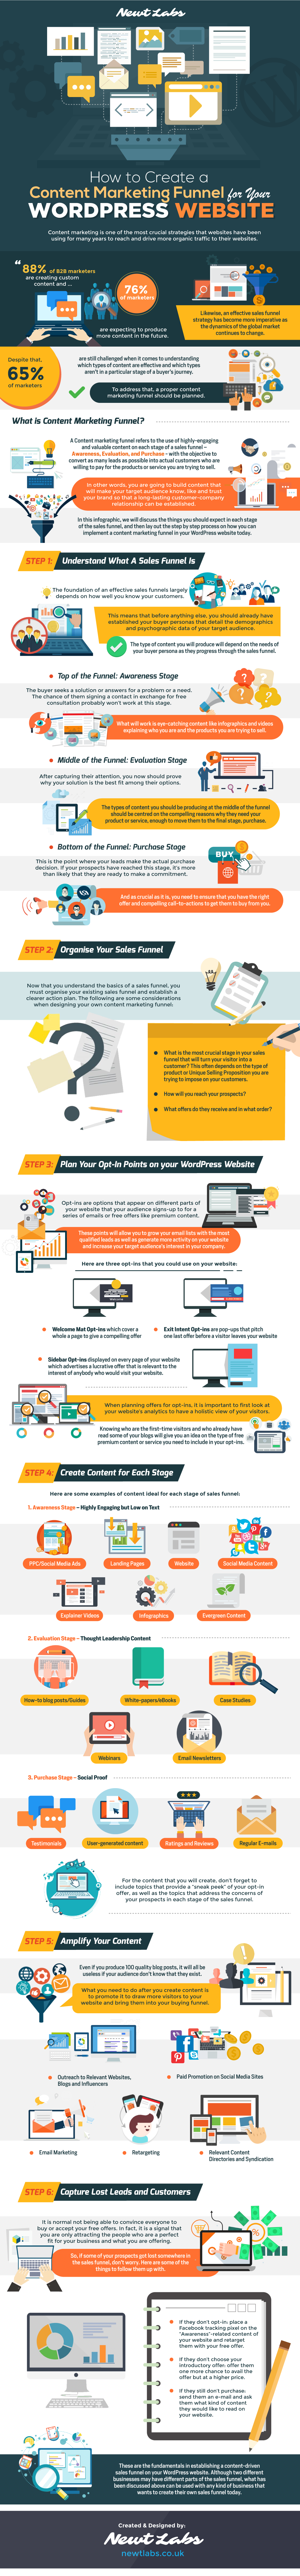 How to Create a Content Marketing Funnel for Your WordPress Website (Infographic)